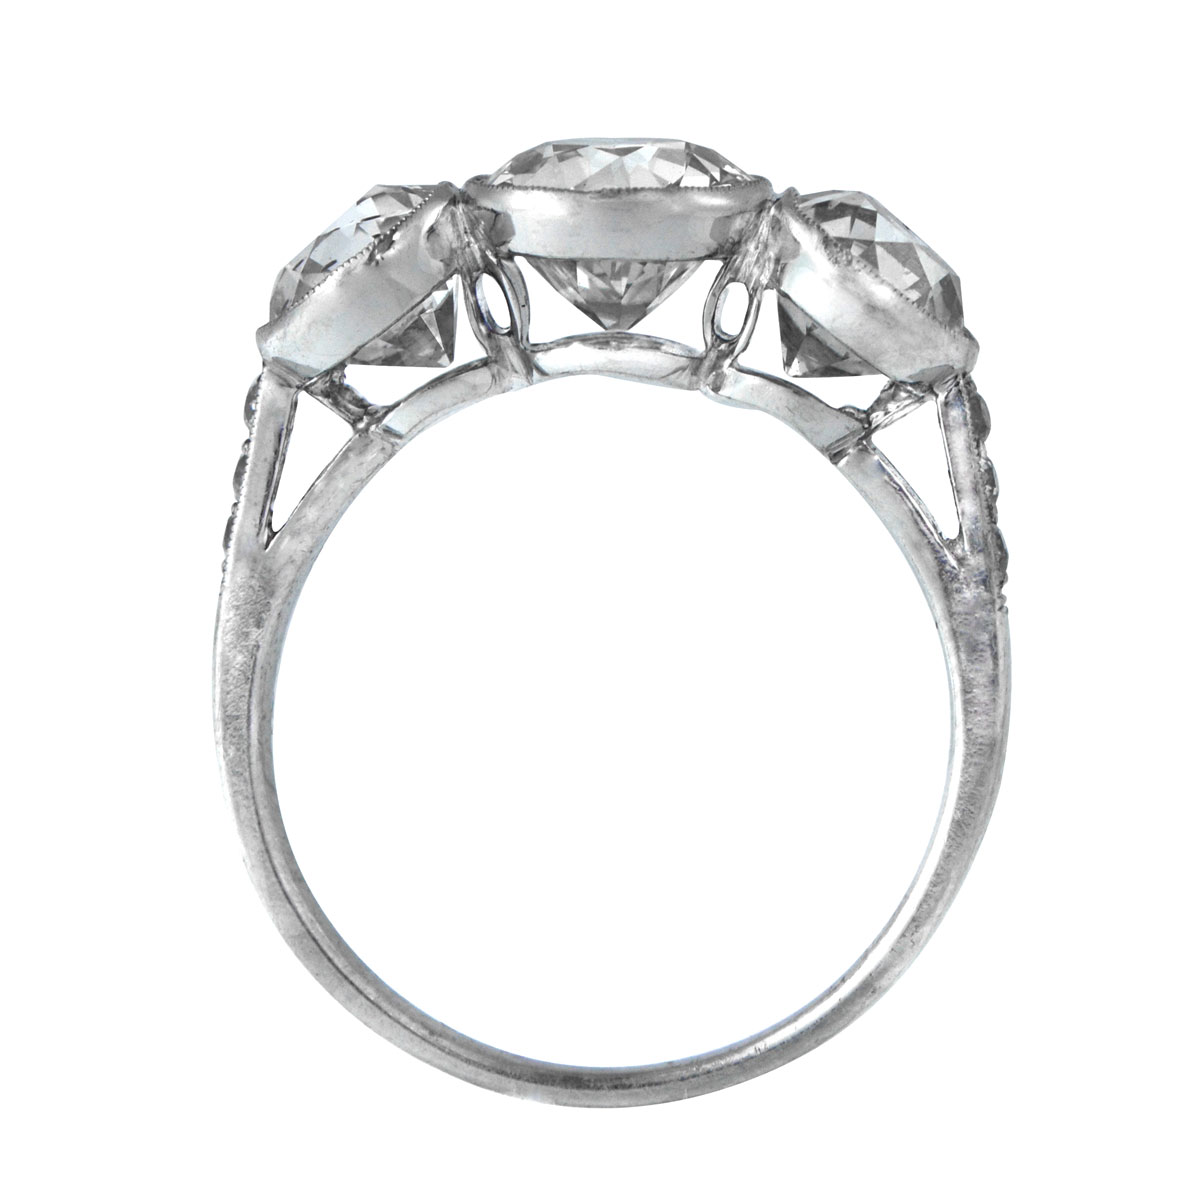 Diamond Ring Drawing Three stone bezel diamond ring